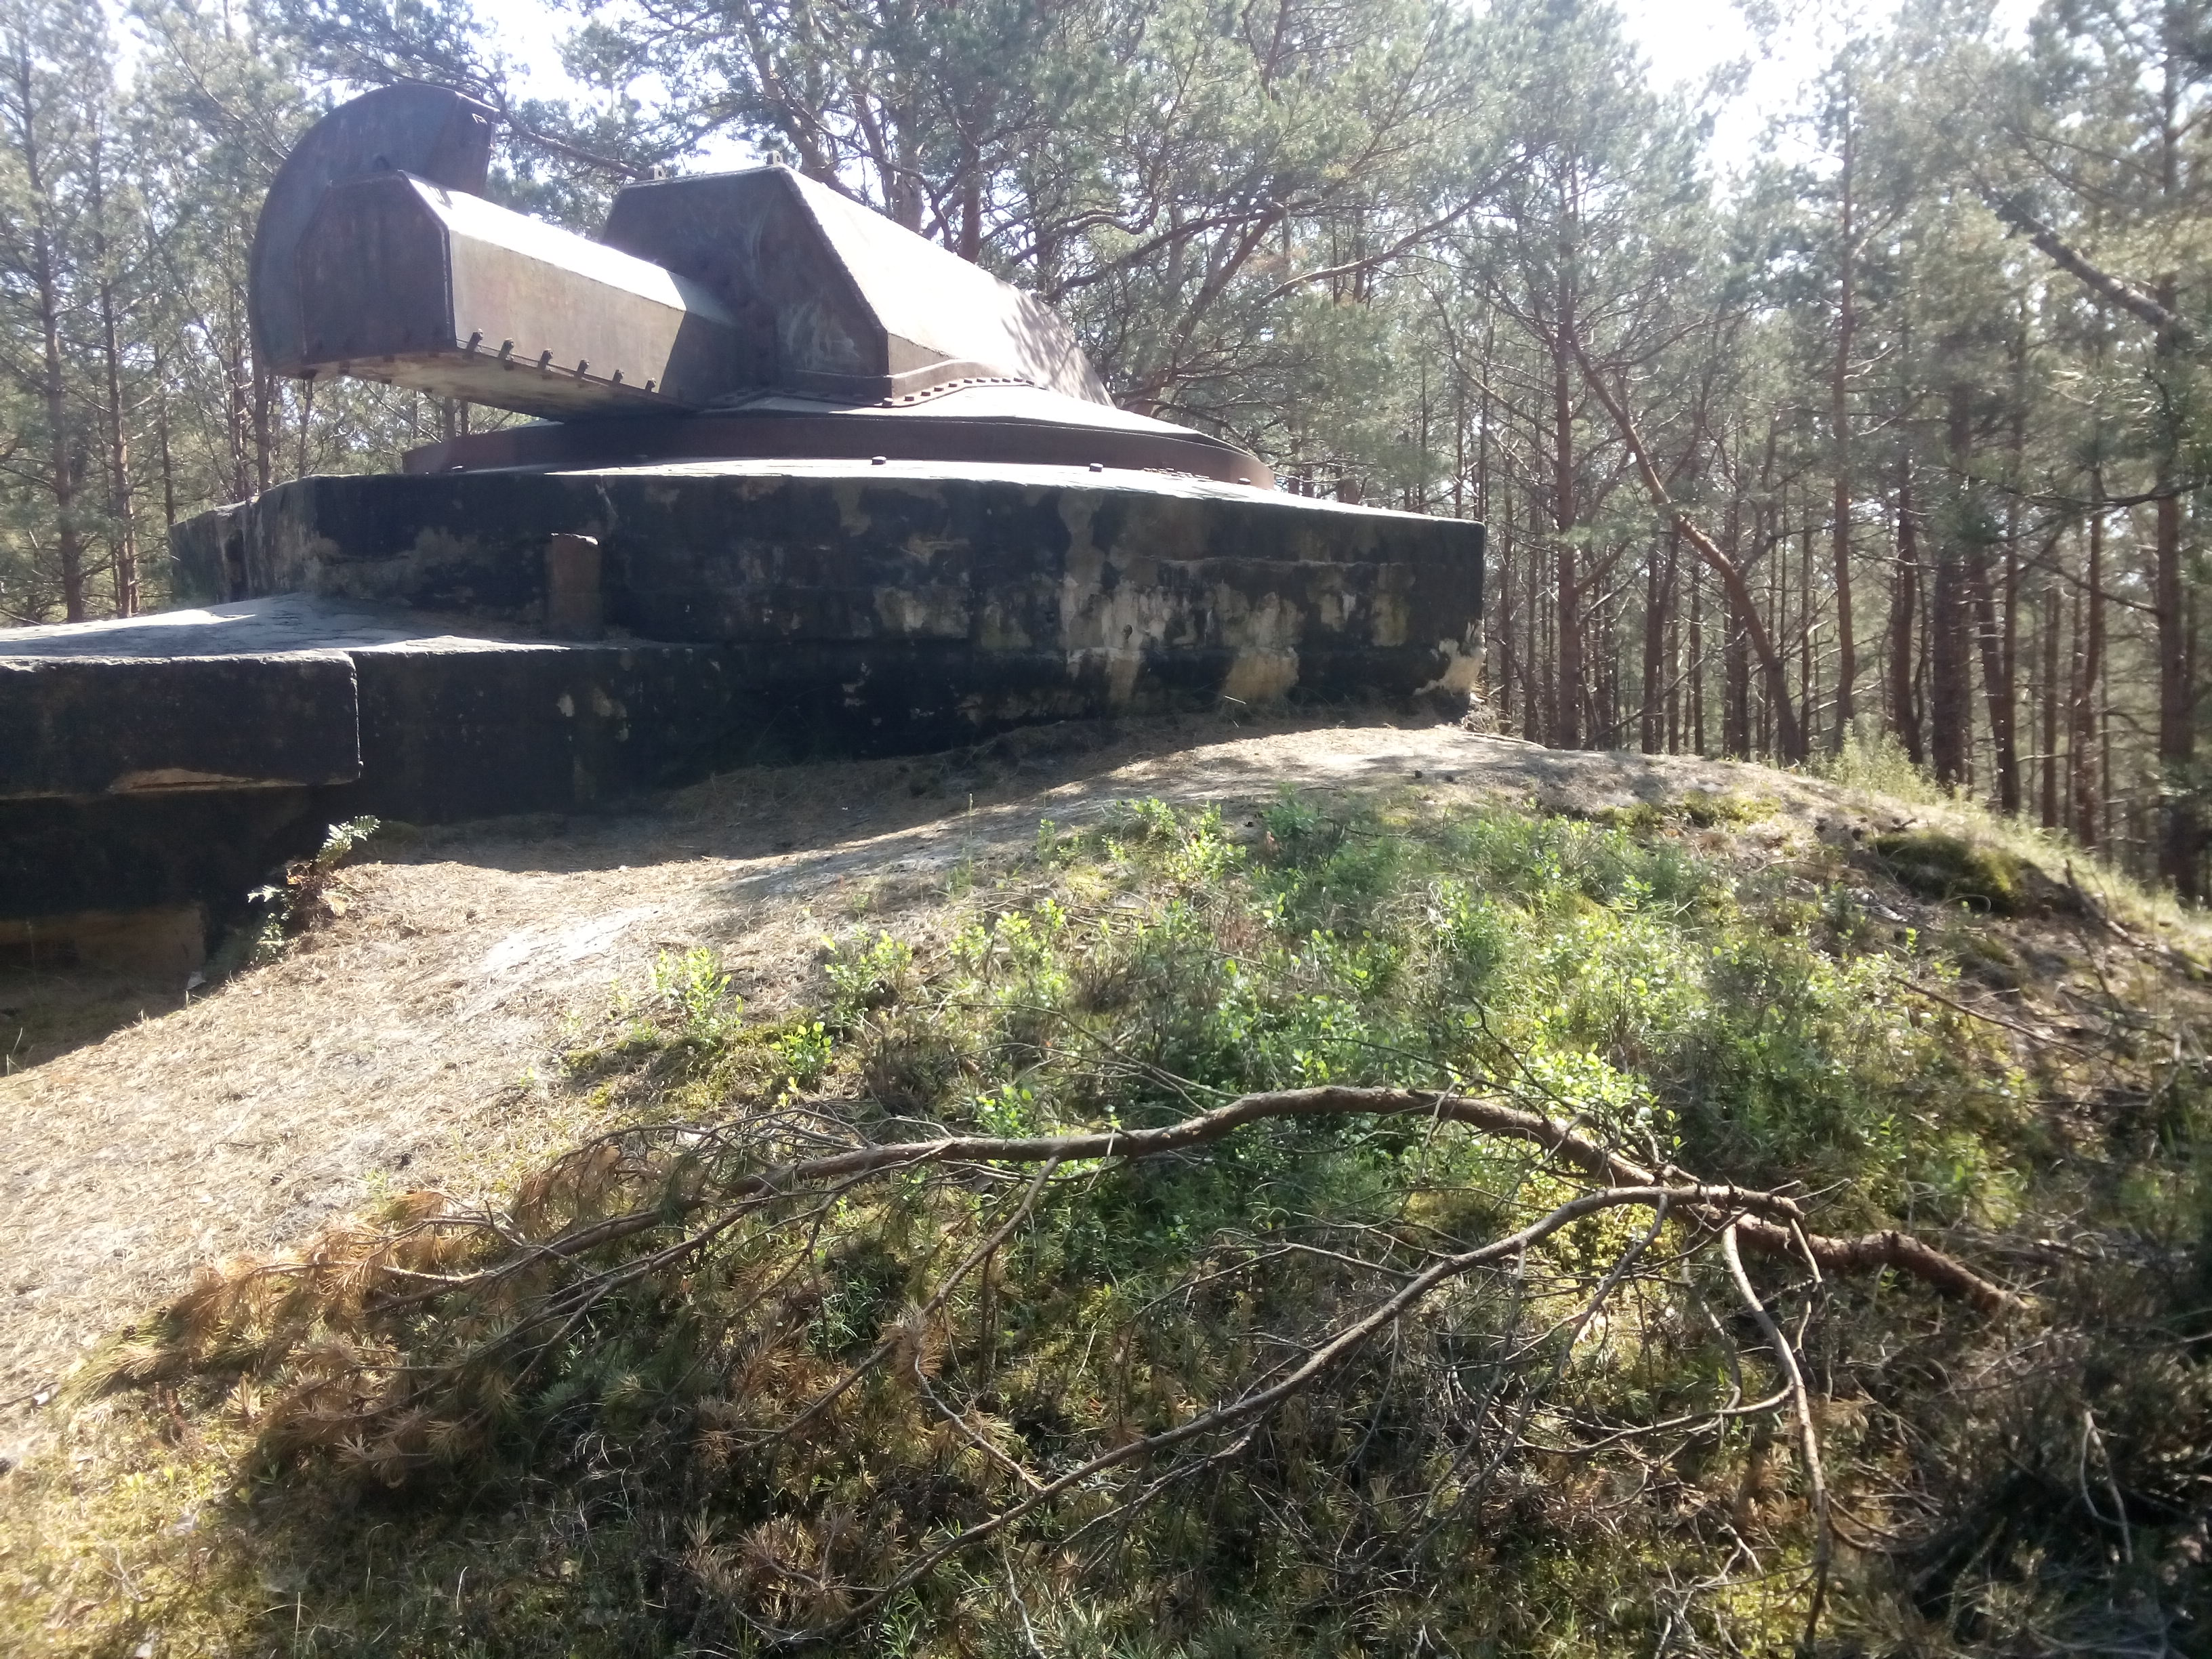 A military shelter that looks like a tank sticking out the top of a dune with grass, and trees in the background